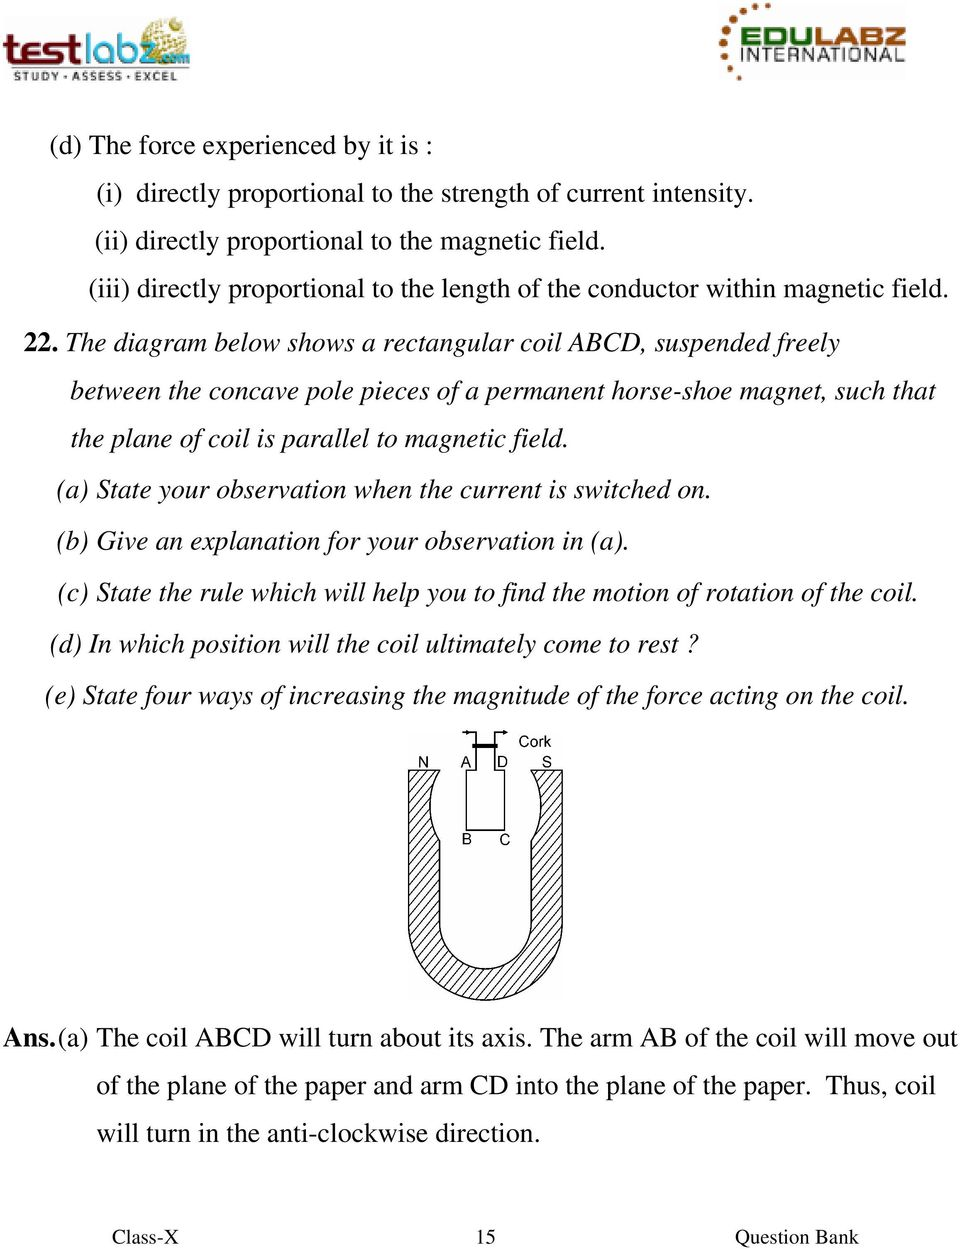 The diagram below shows a rectangular coil ABCD, suspended freely between the concave pole pieces of a permanent horse-shoe magnet, such that the plane of coil is parallel to magnetic field.